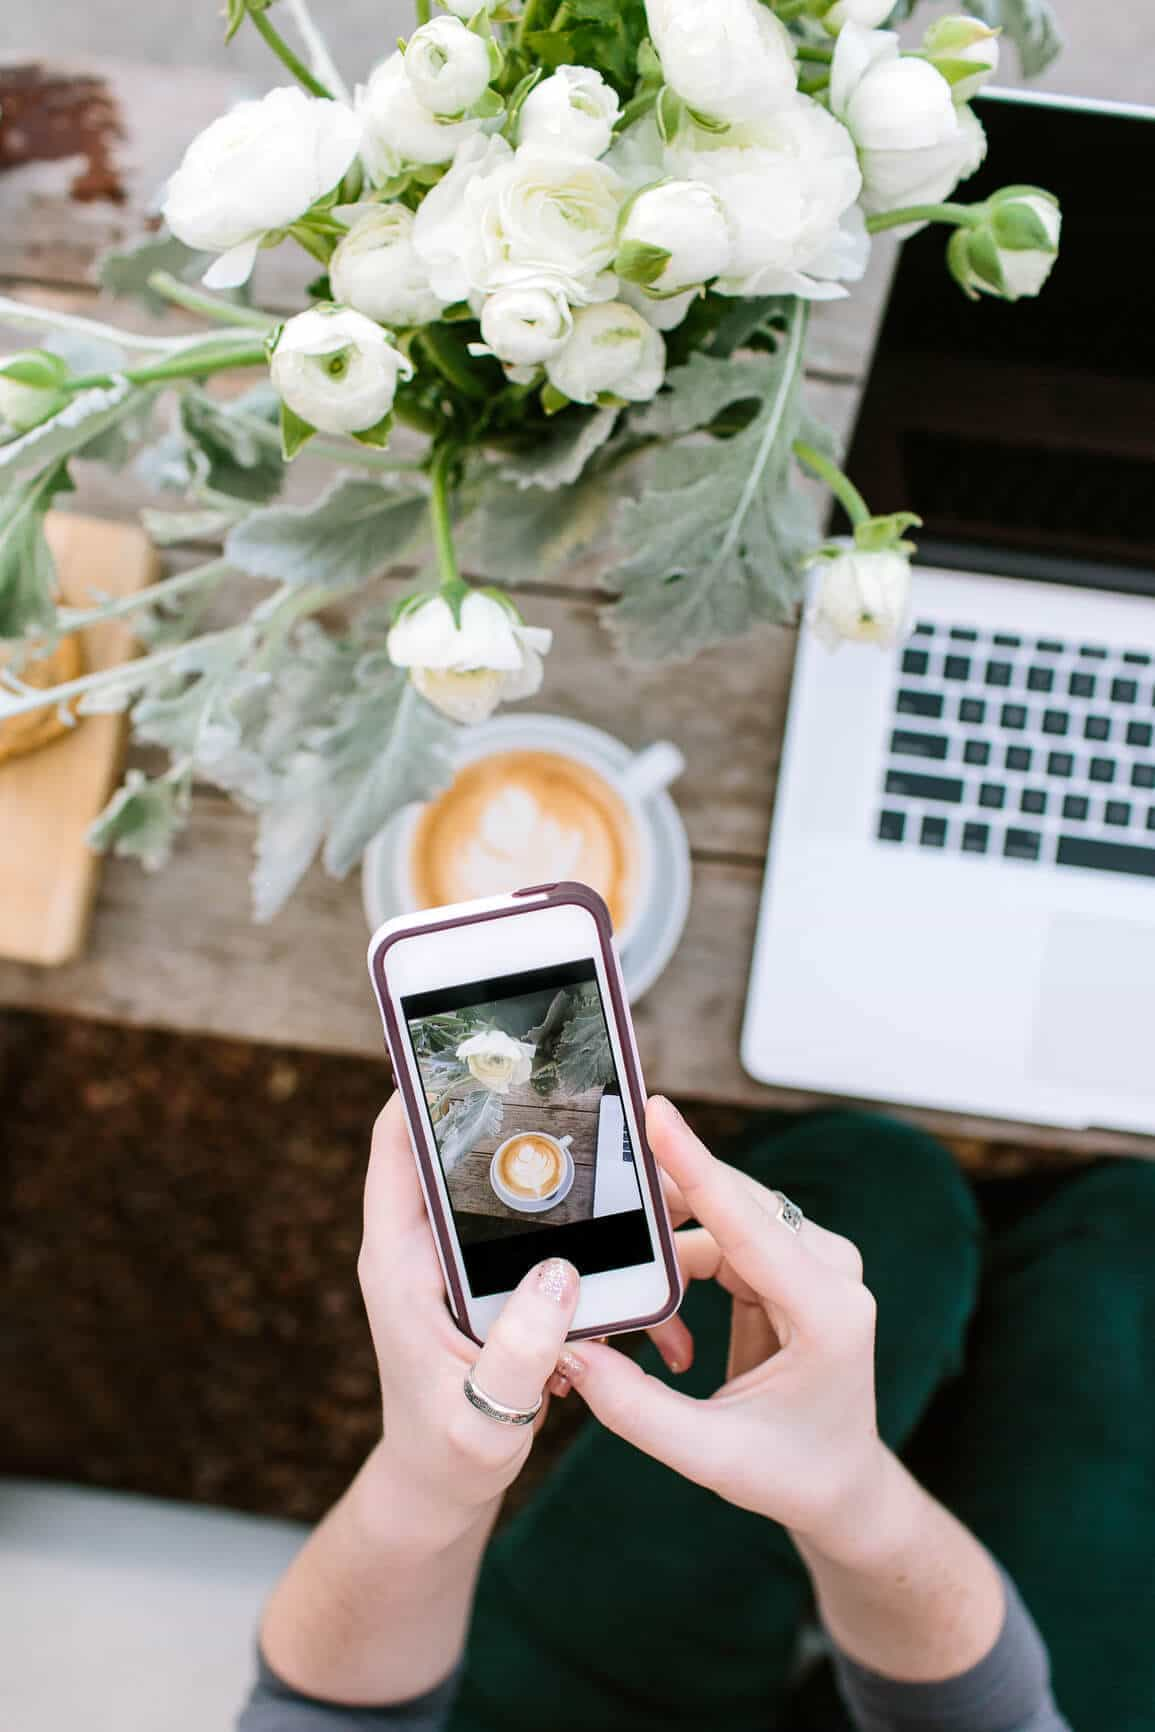 Woman taking iphone photo of her coffee on beautiful table with flowers and laptop.